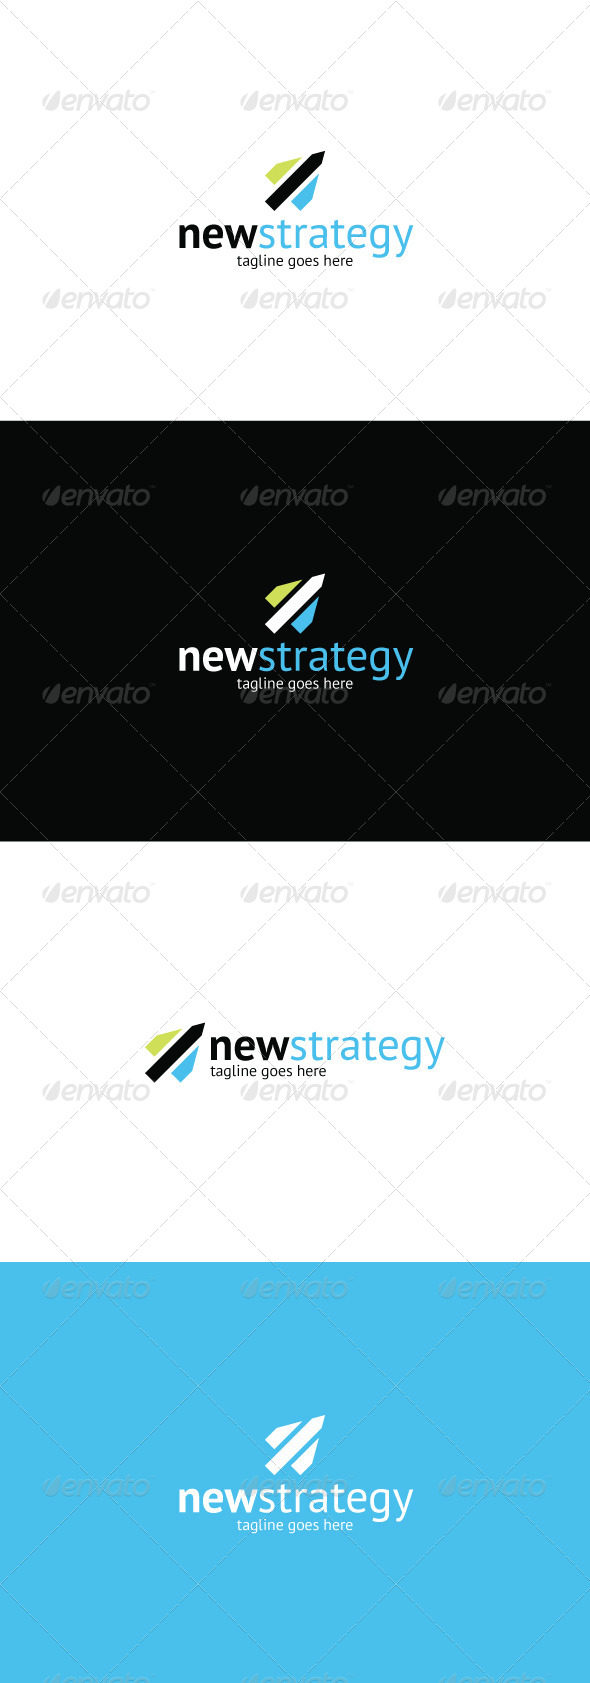 GraphicRiver New Strategy Logo 8374384